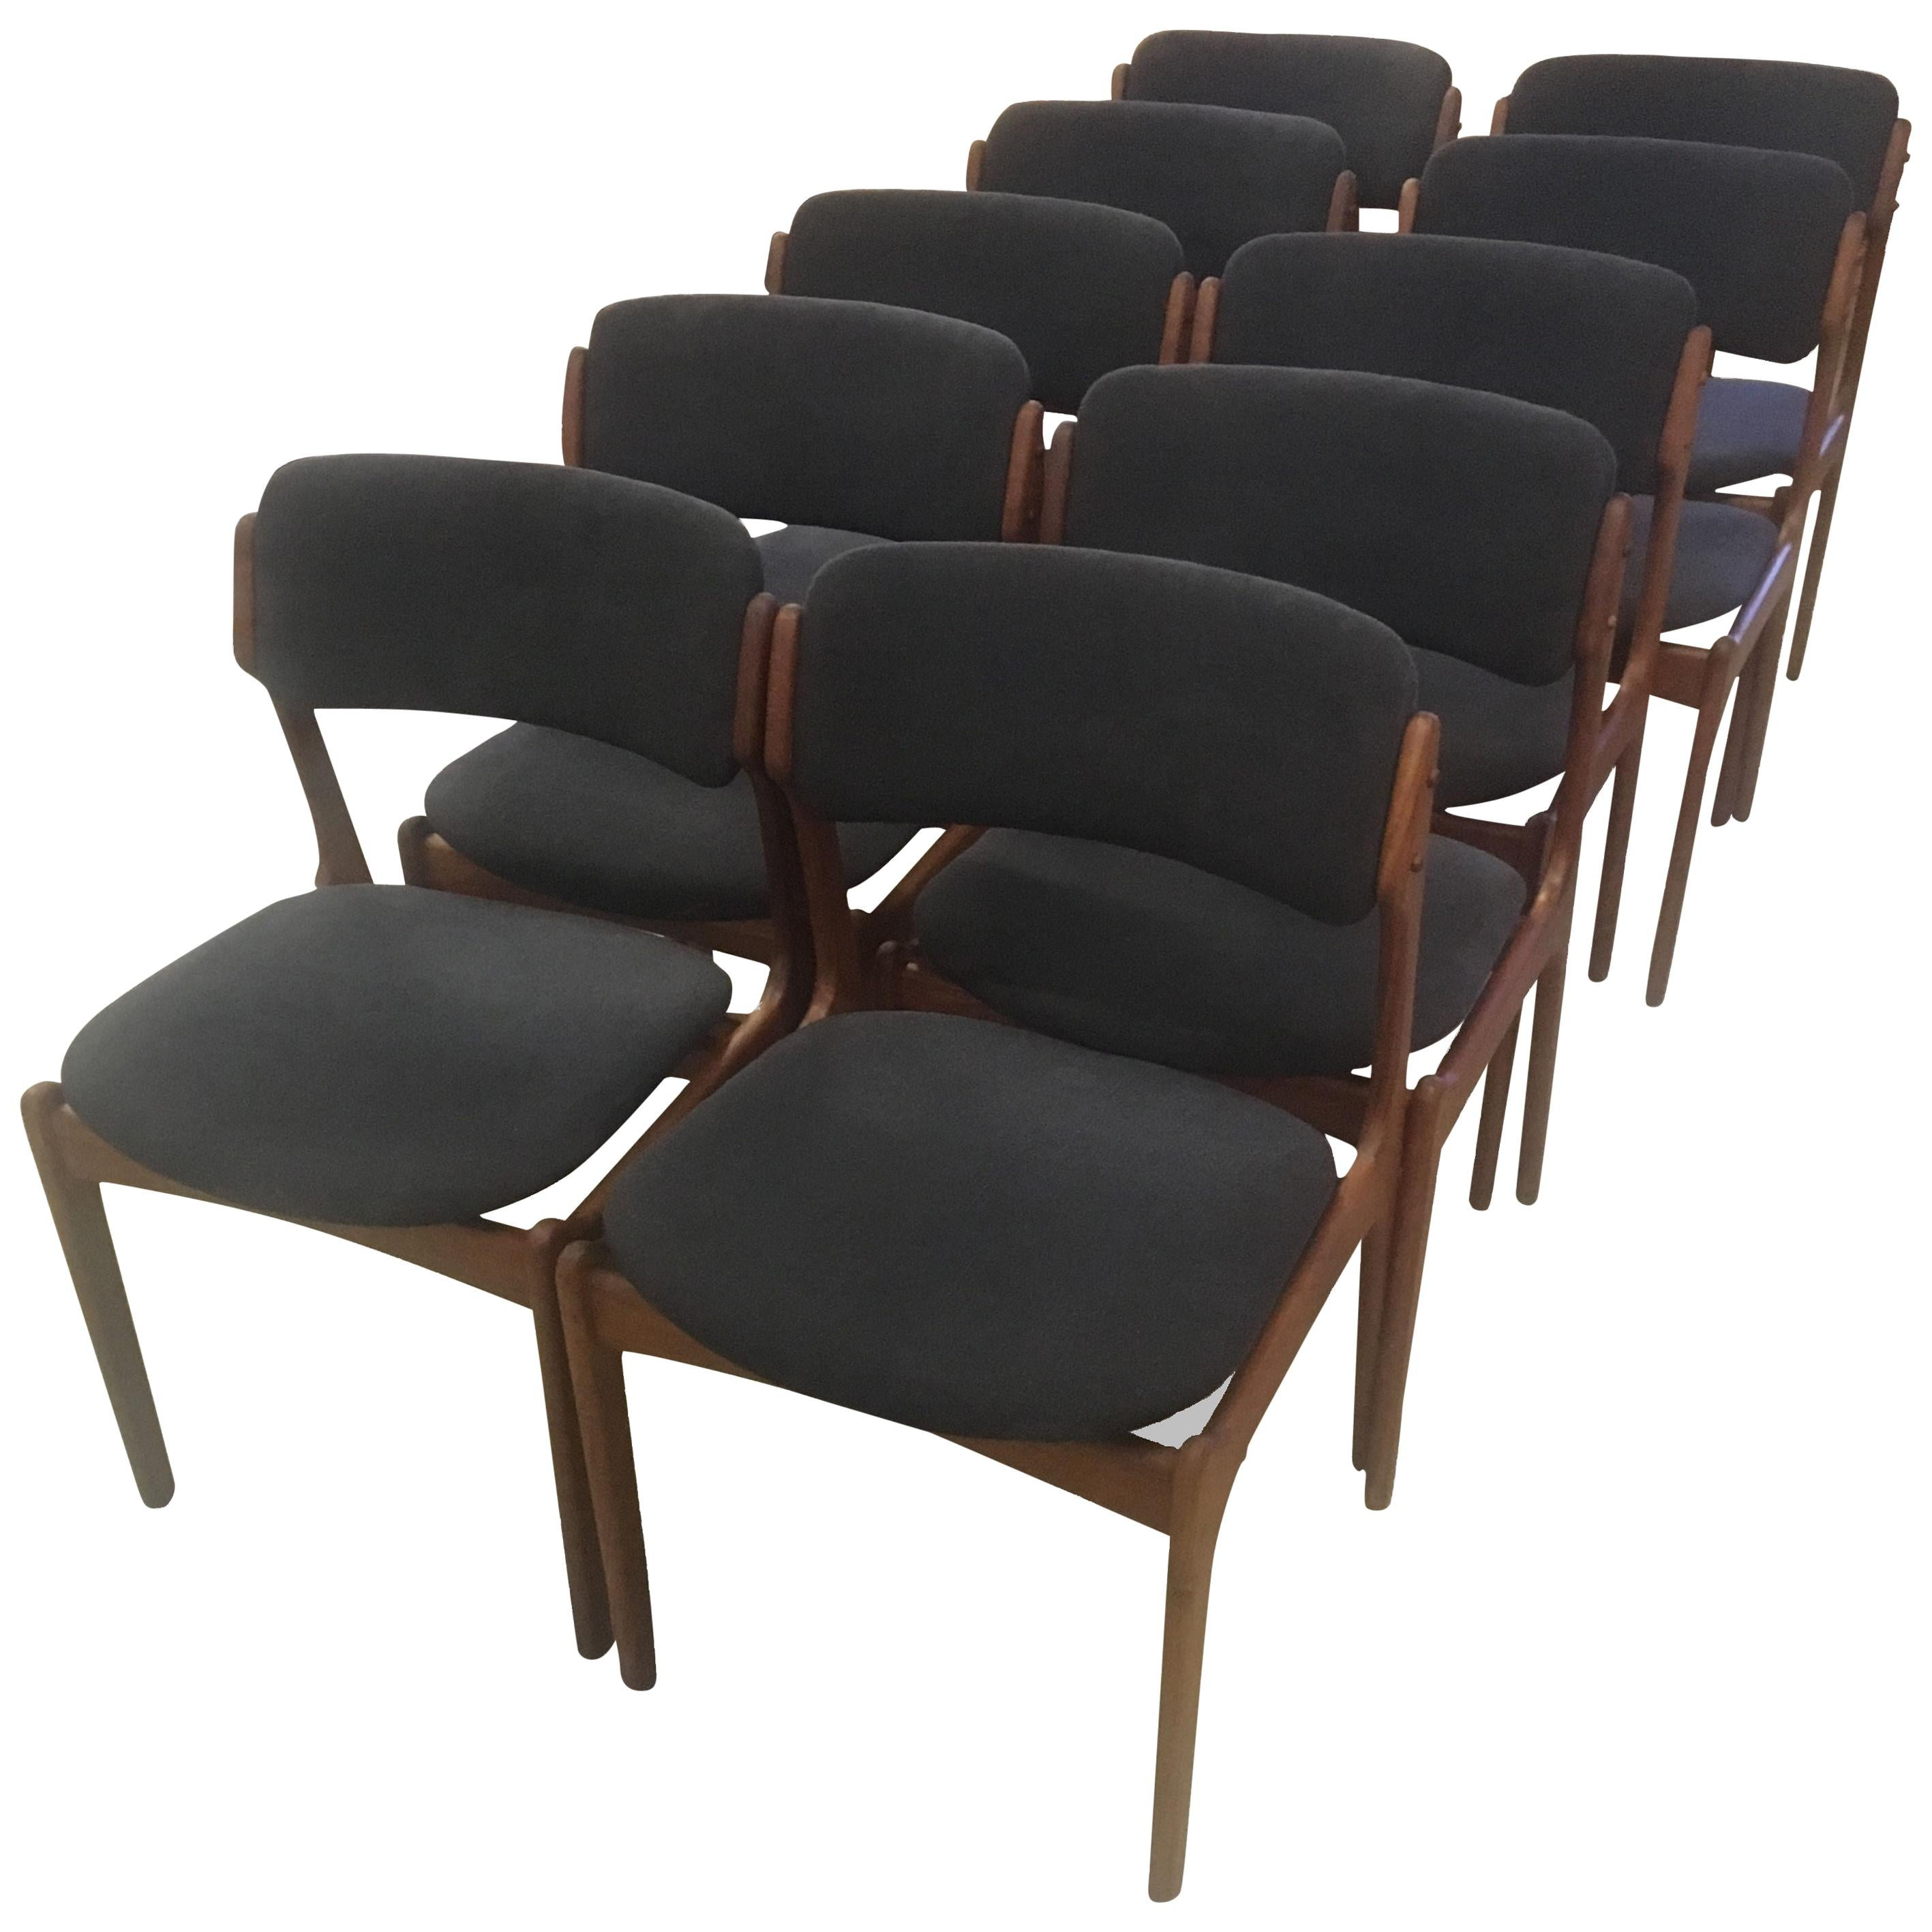 Set of Ten Fully Restored Erik Buch Teak Dining Chairs, Inc. Reupholstery